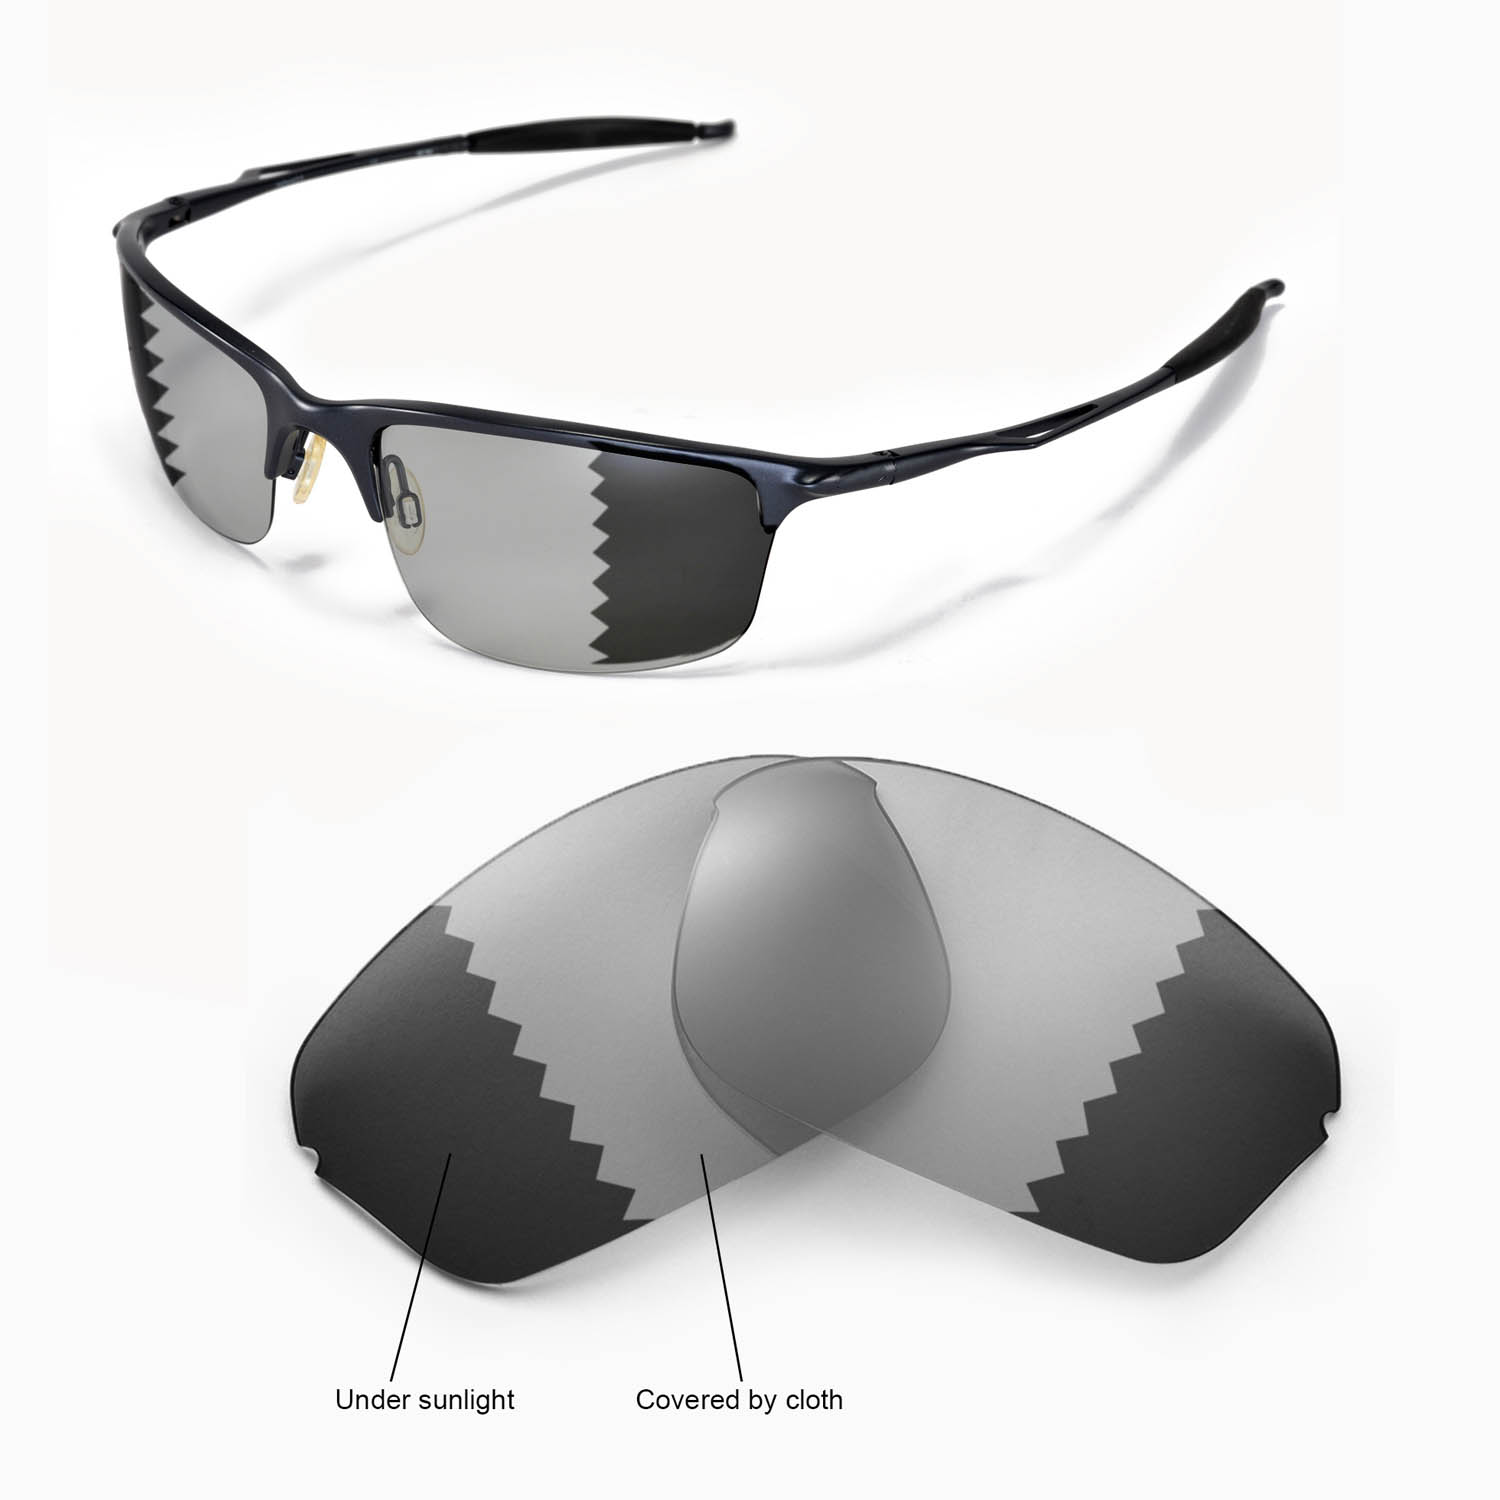 New Walleva Polarized Transition/Photochromic Lenses For Oakley Half ...